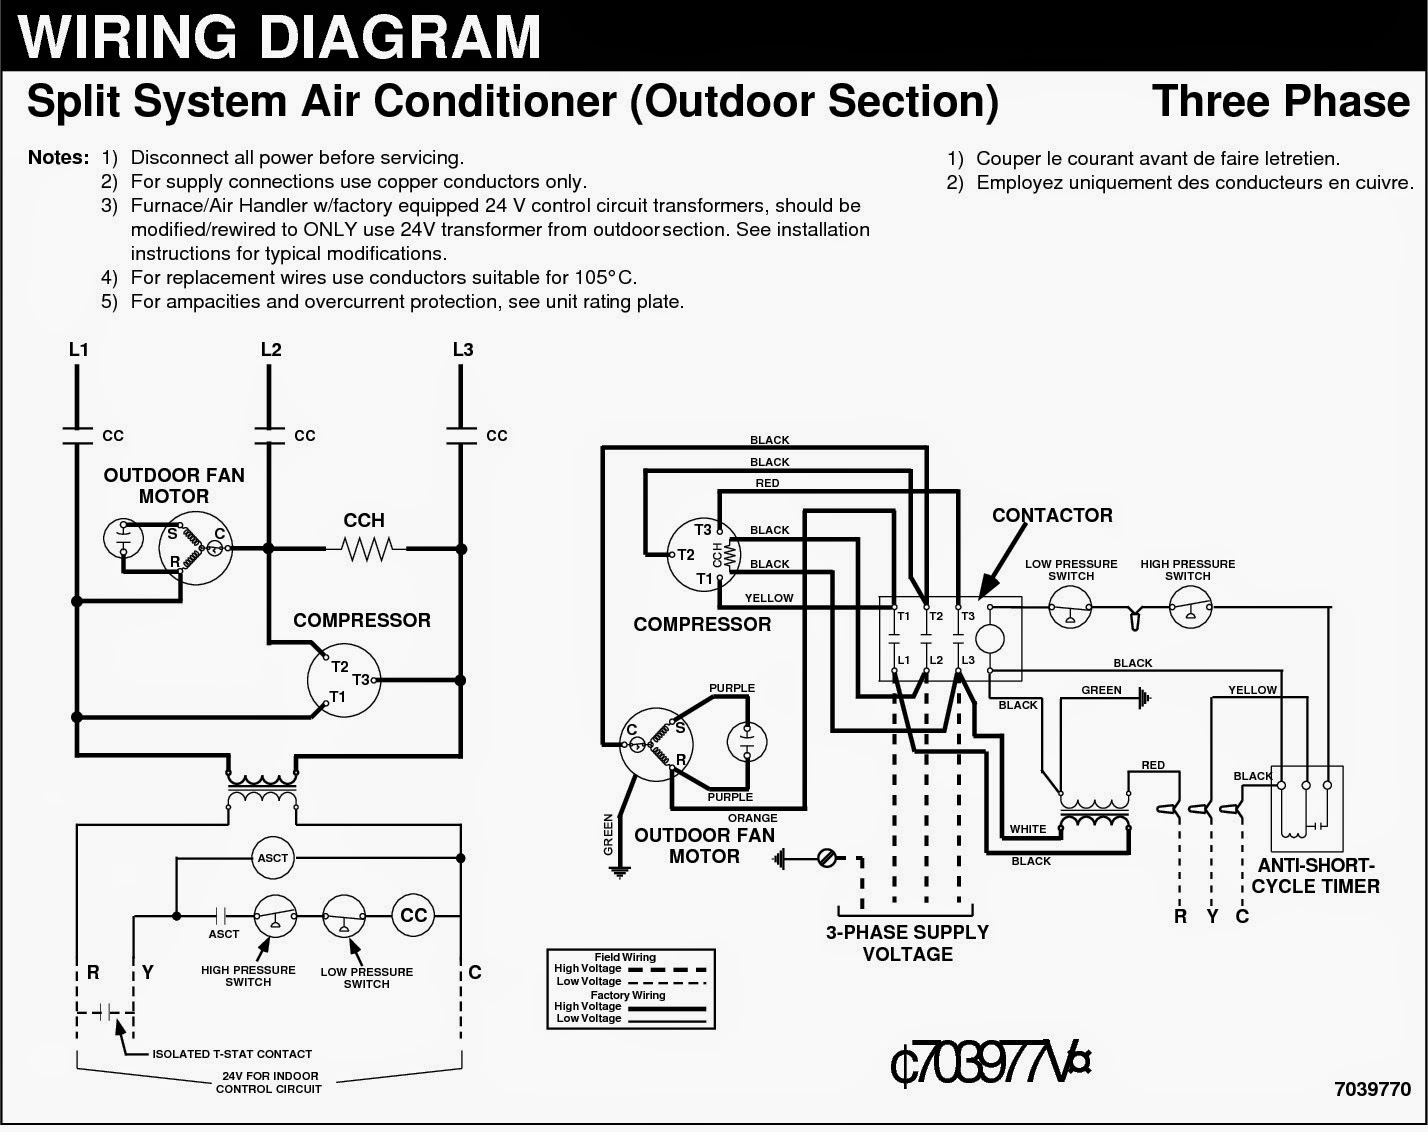 3+phase electrical wiring diagrams for air conditioning systems part two ac compressor wiring diagram at panicattacktreatment.co